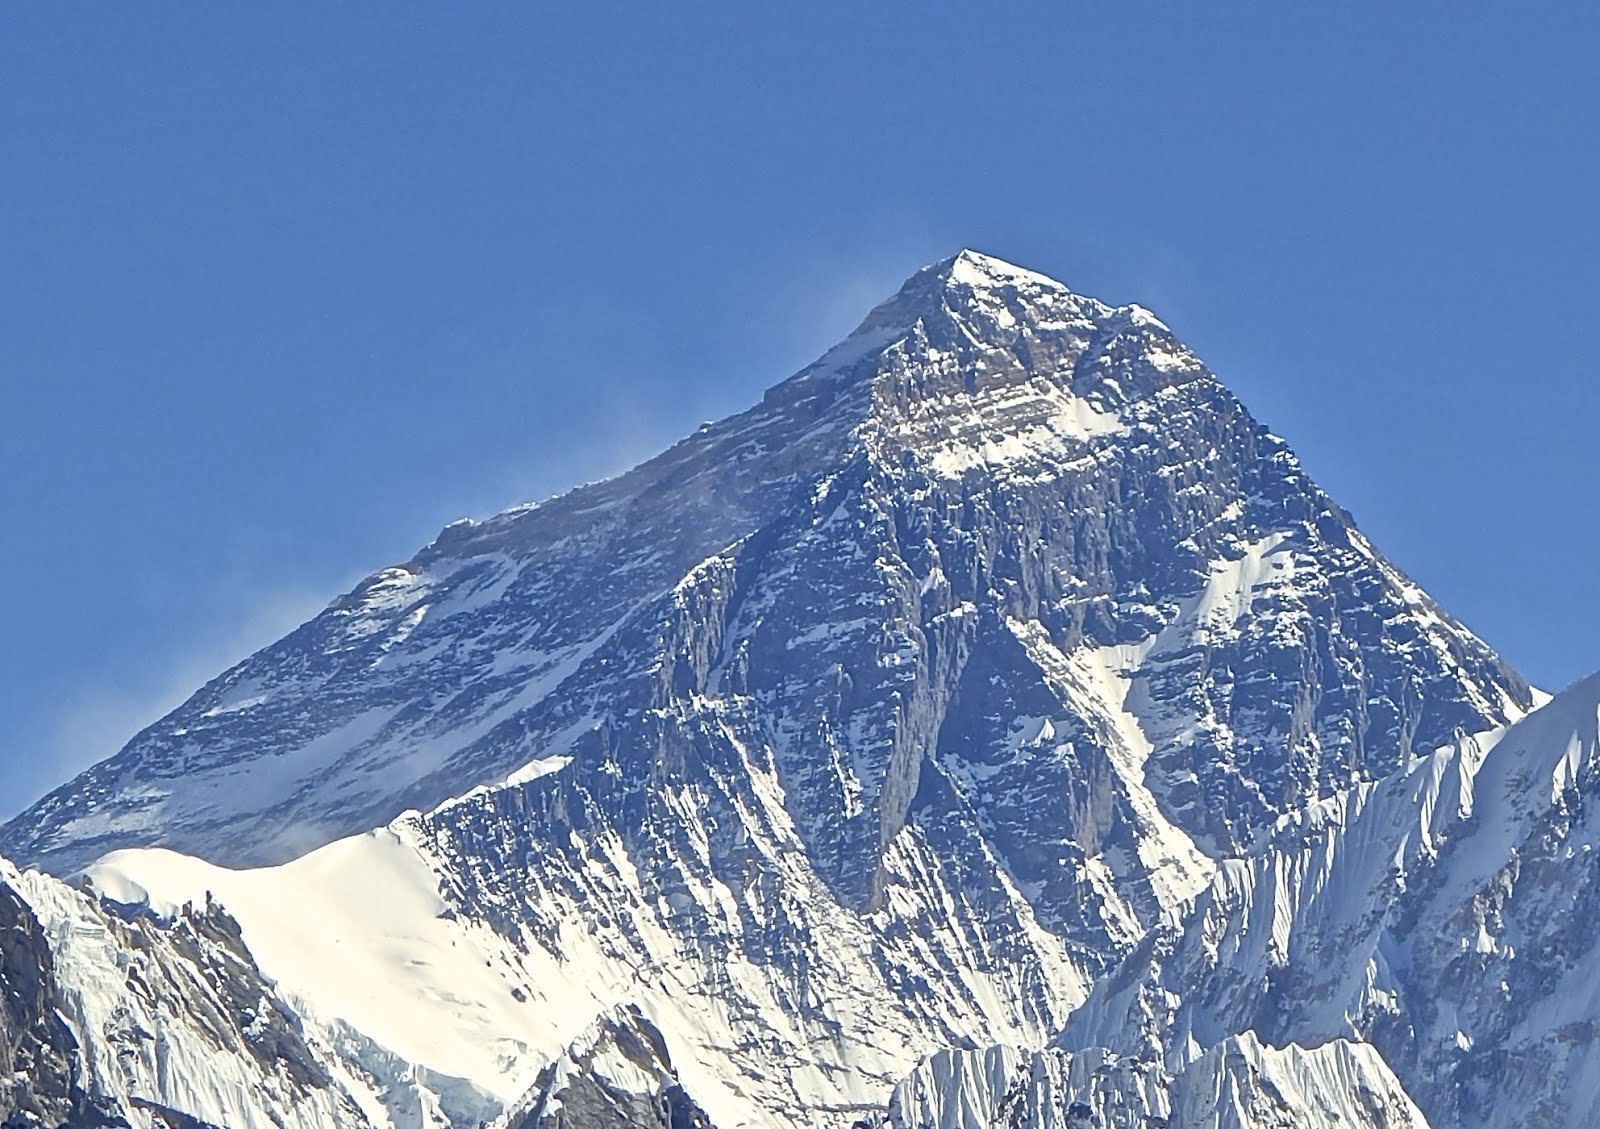 Western side of Mount Everest